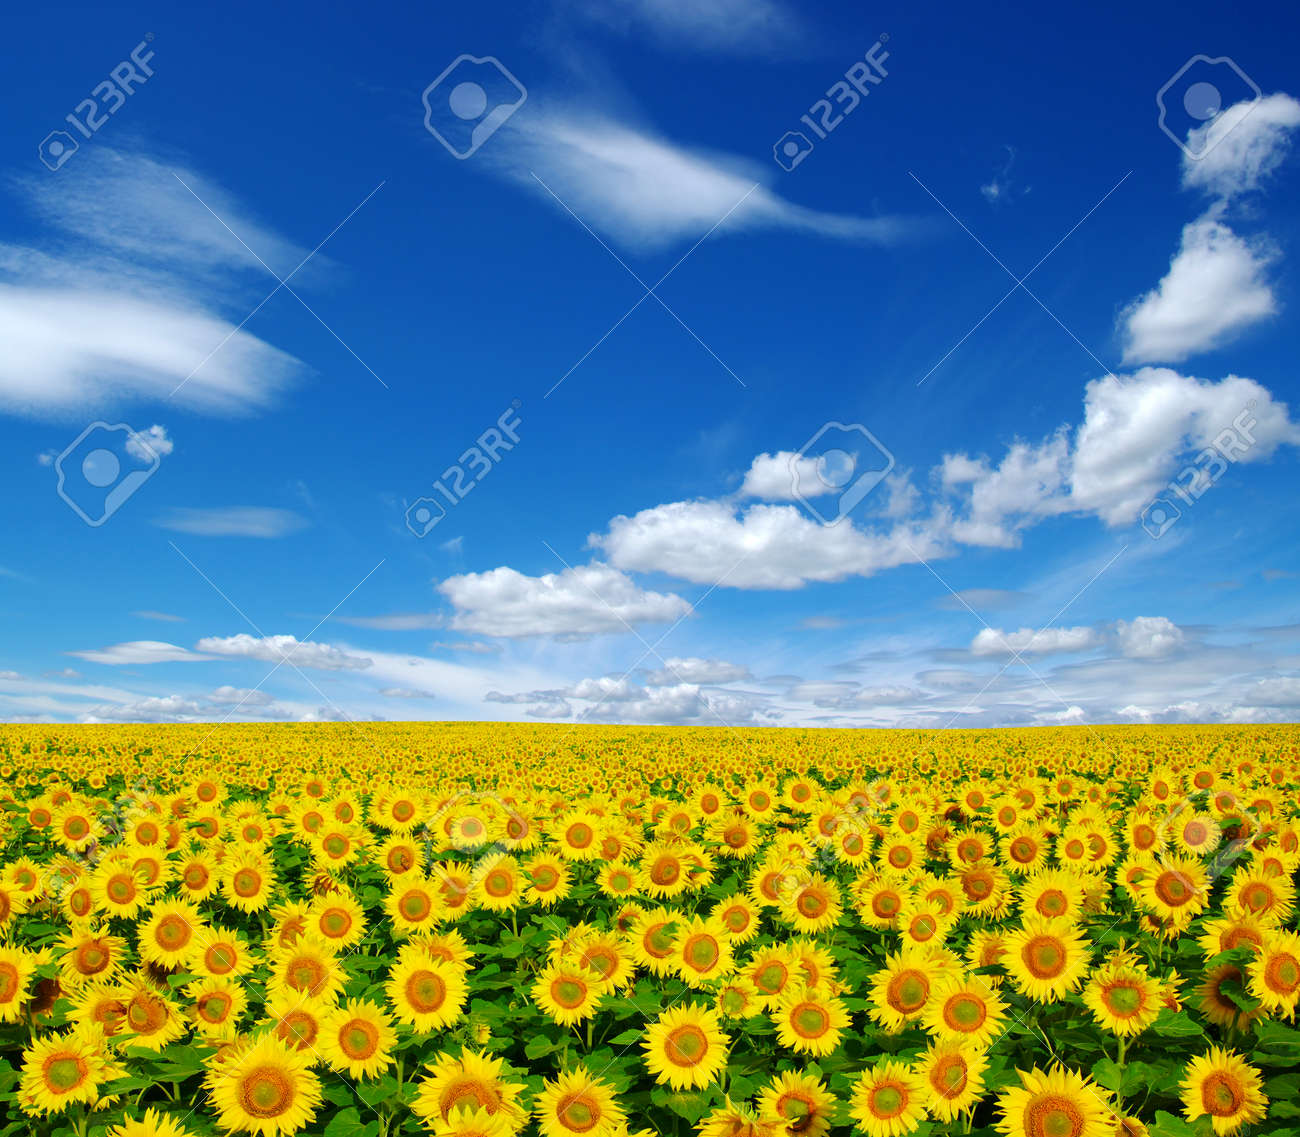 sunflowers field on cloudy blue sky Banque d'images - 26666462